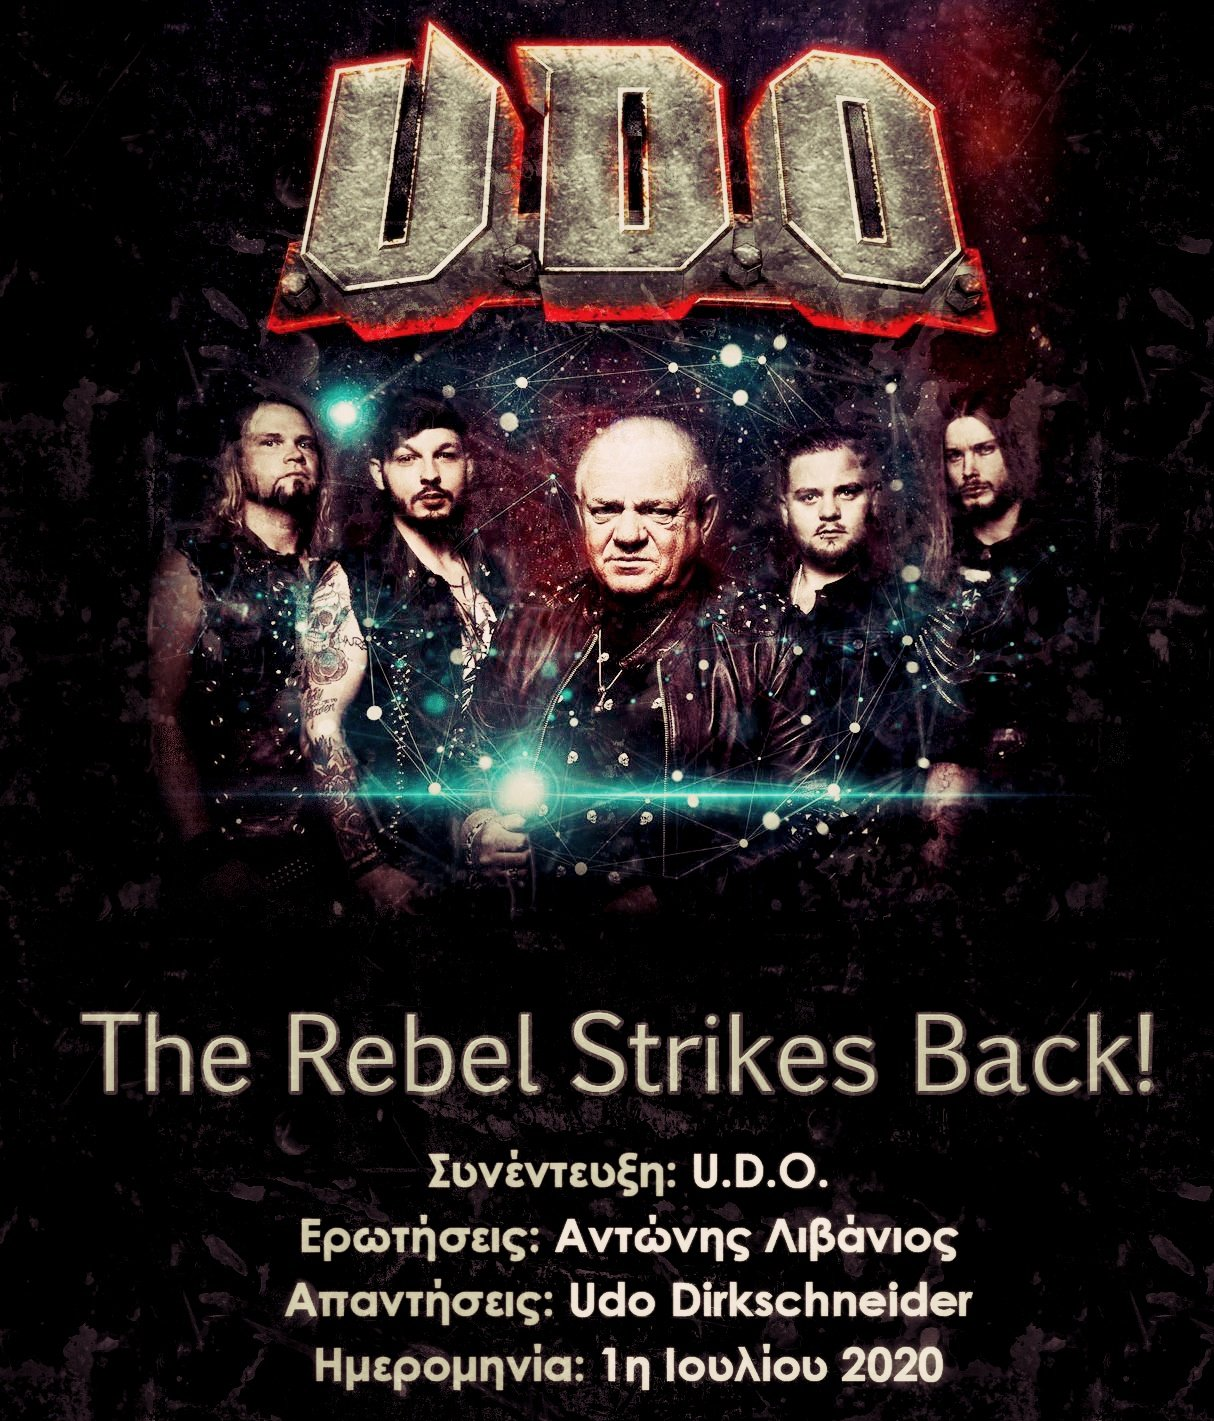 U.D.O. – The Rebel Strikes Back!